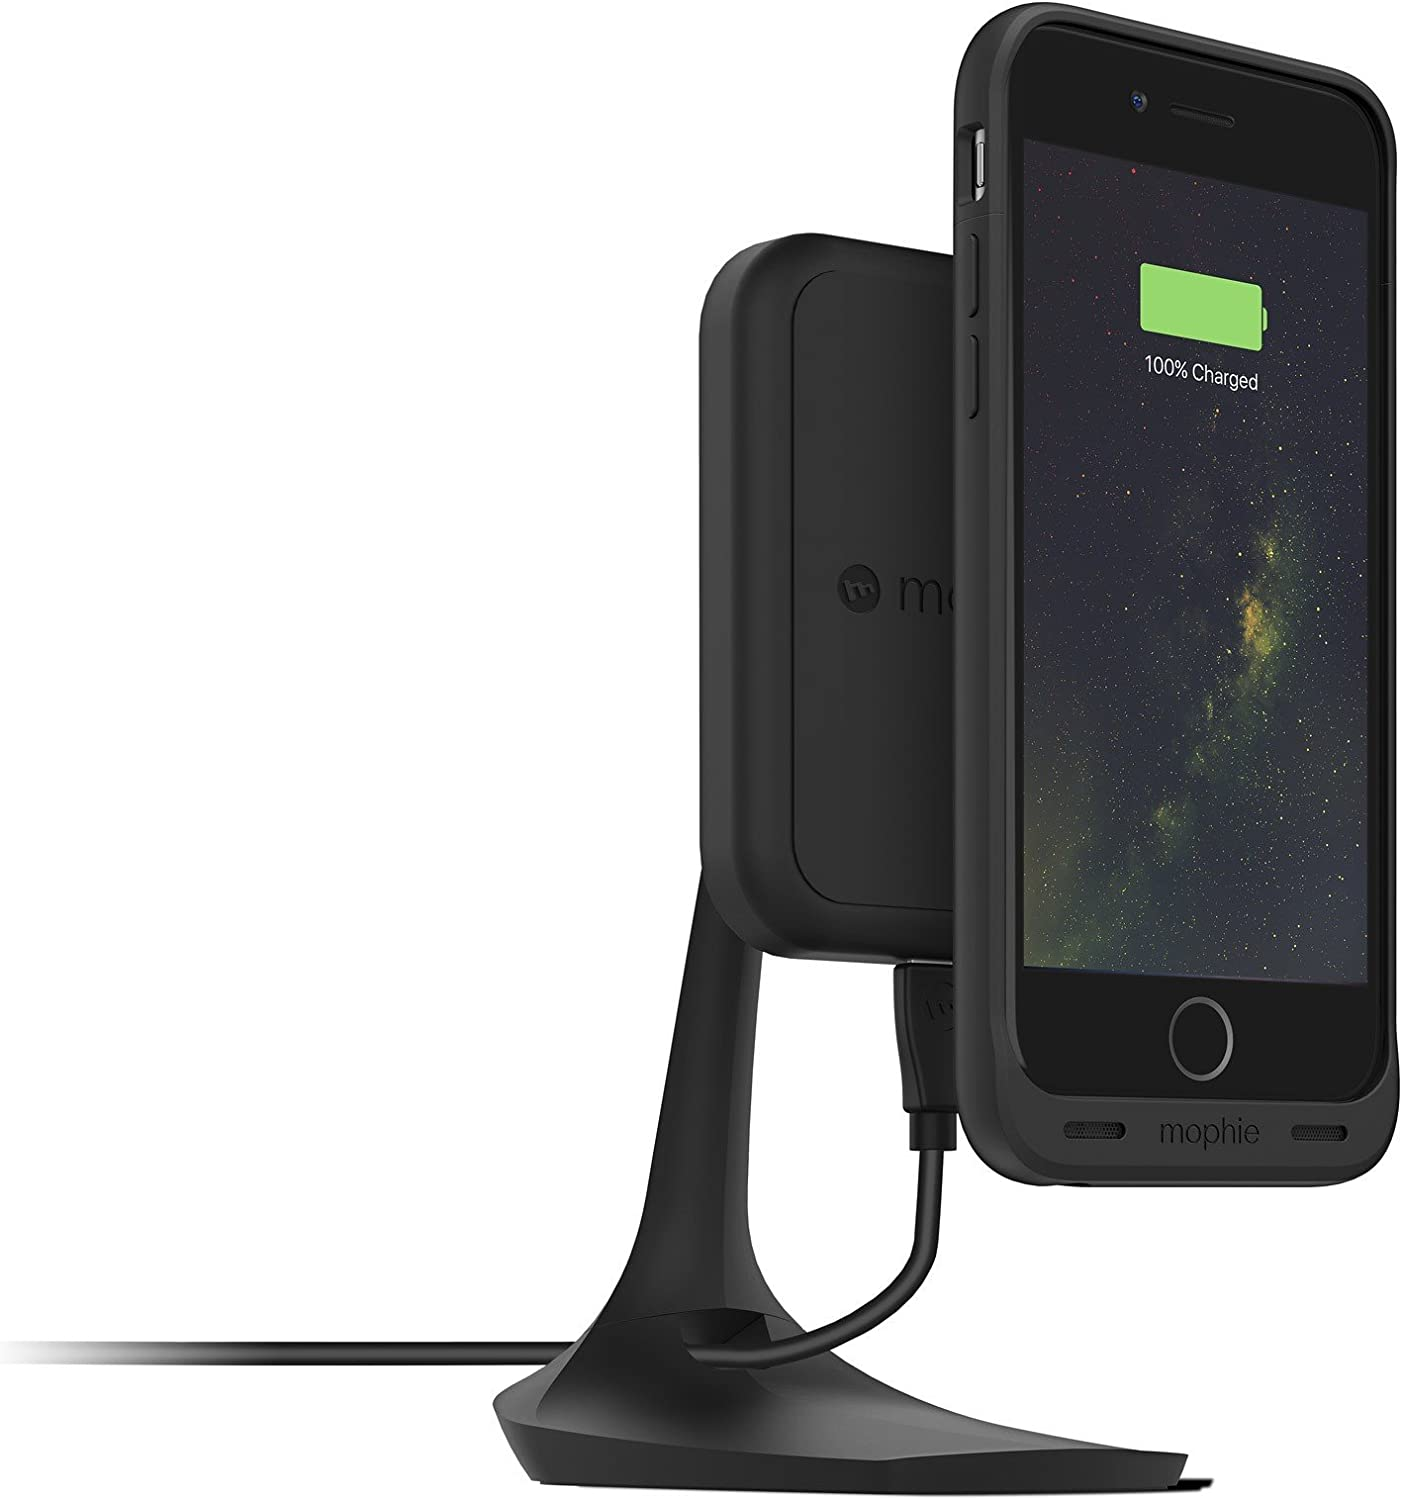 Amazon Com Mophie Charge Force Desk Mount For Mophie Wireless Case With Charge Force Wireless Power Black Charge your airpods, apple watch, and iphone in one go. mophie charge force desk mount for mophie wireless case with charge force wireless power black